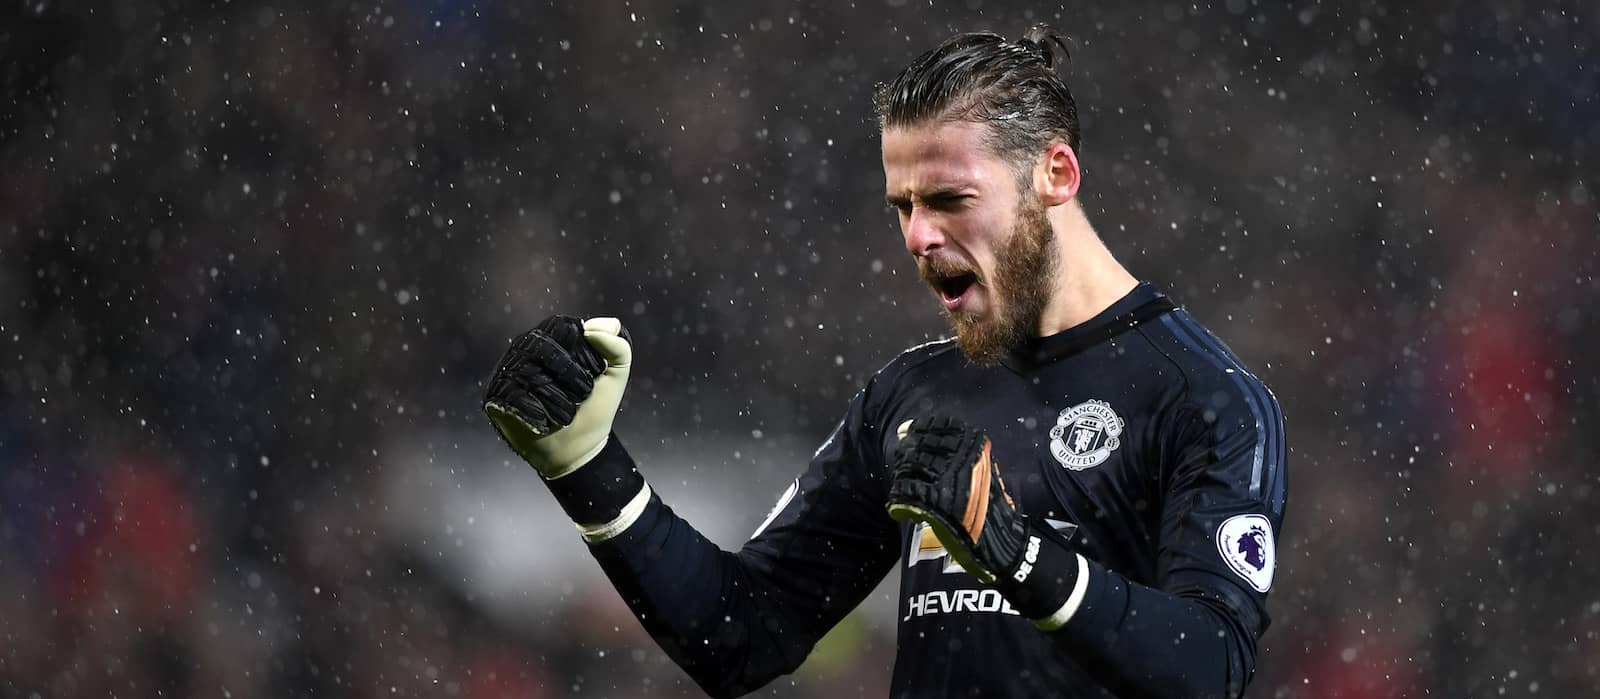 Manchester United's David de Gea asks for Real Madrid move: report